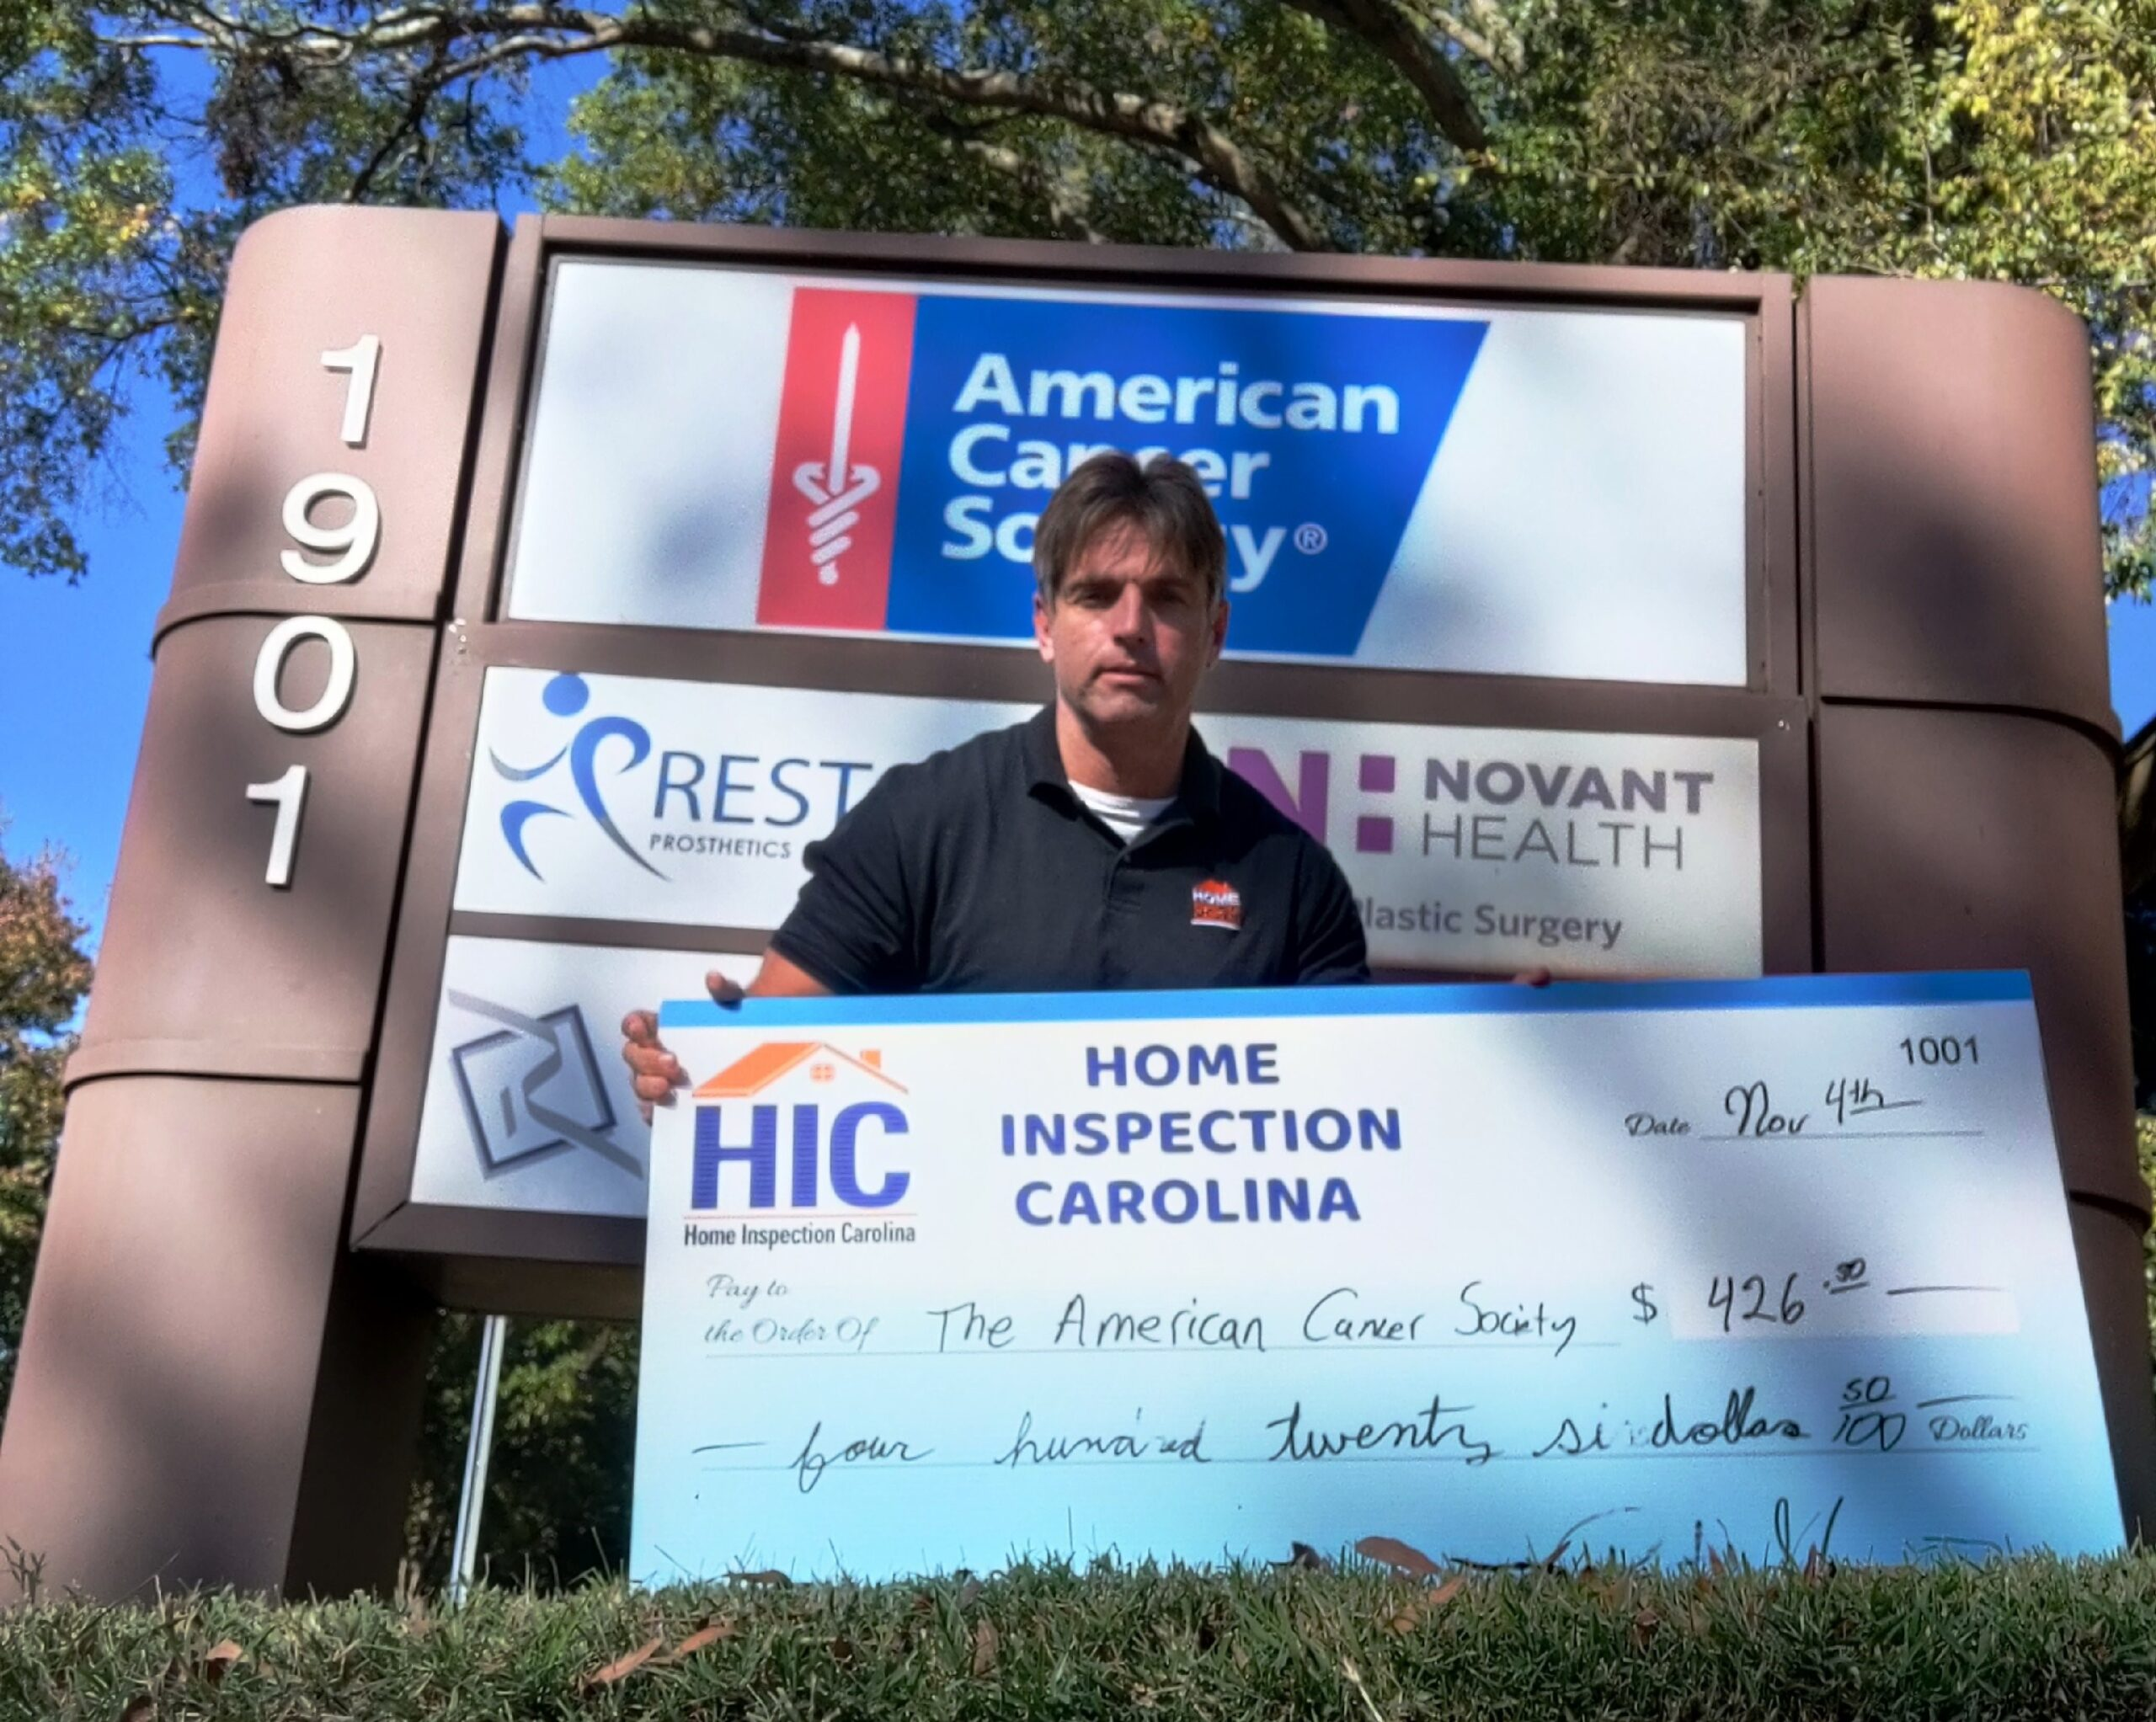 The Amercian Cancer Society Donations for HIC